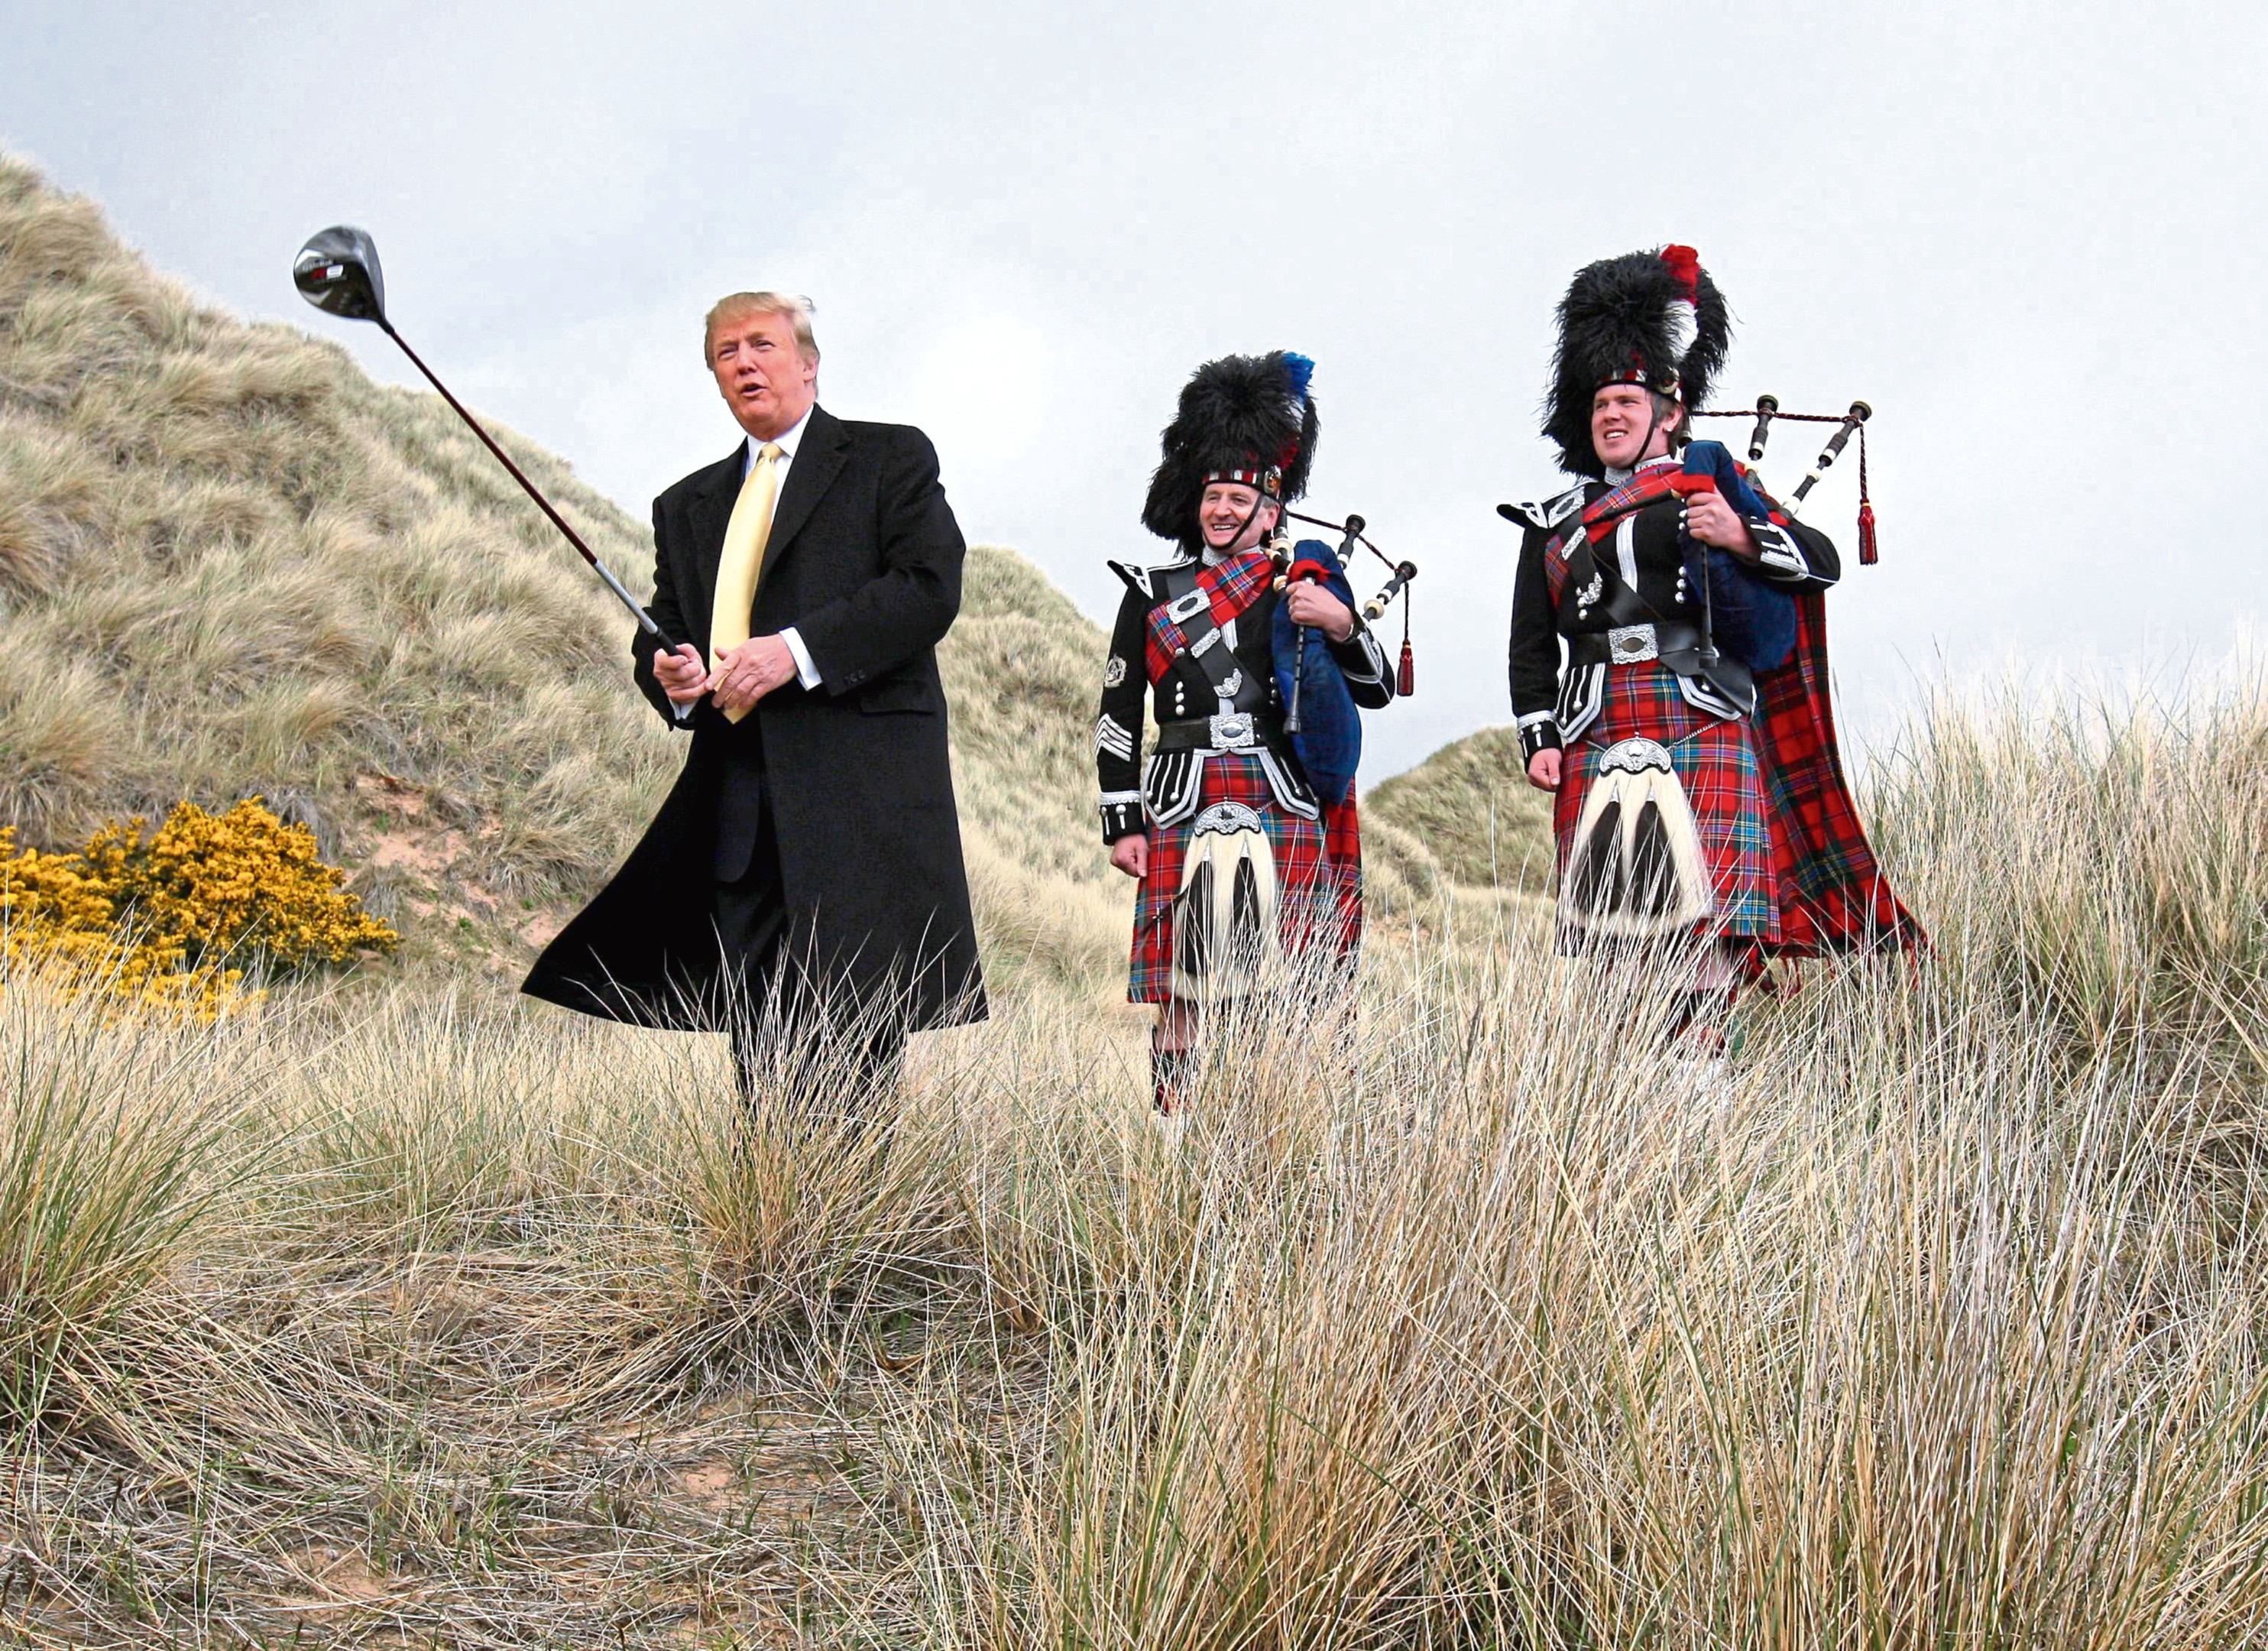 Donald Trump visiting the Menie Estate in Aberdeenshire before his golf resort was built.